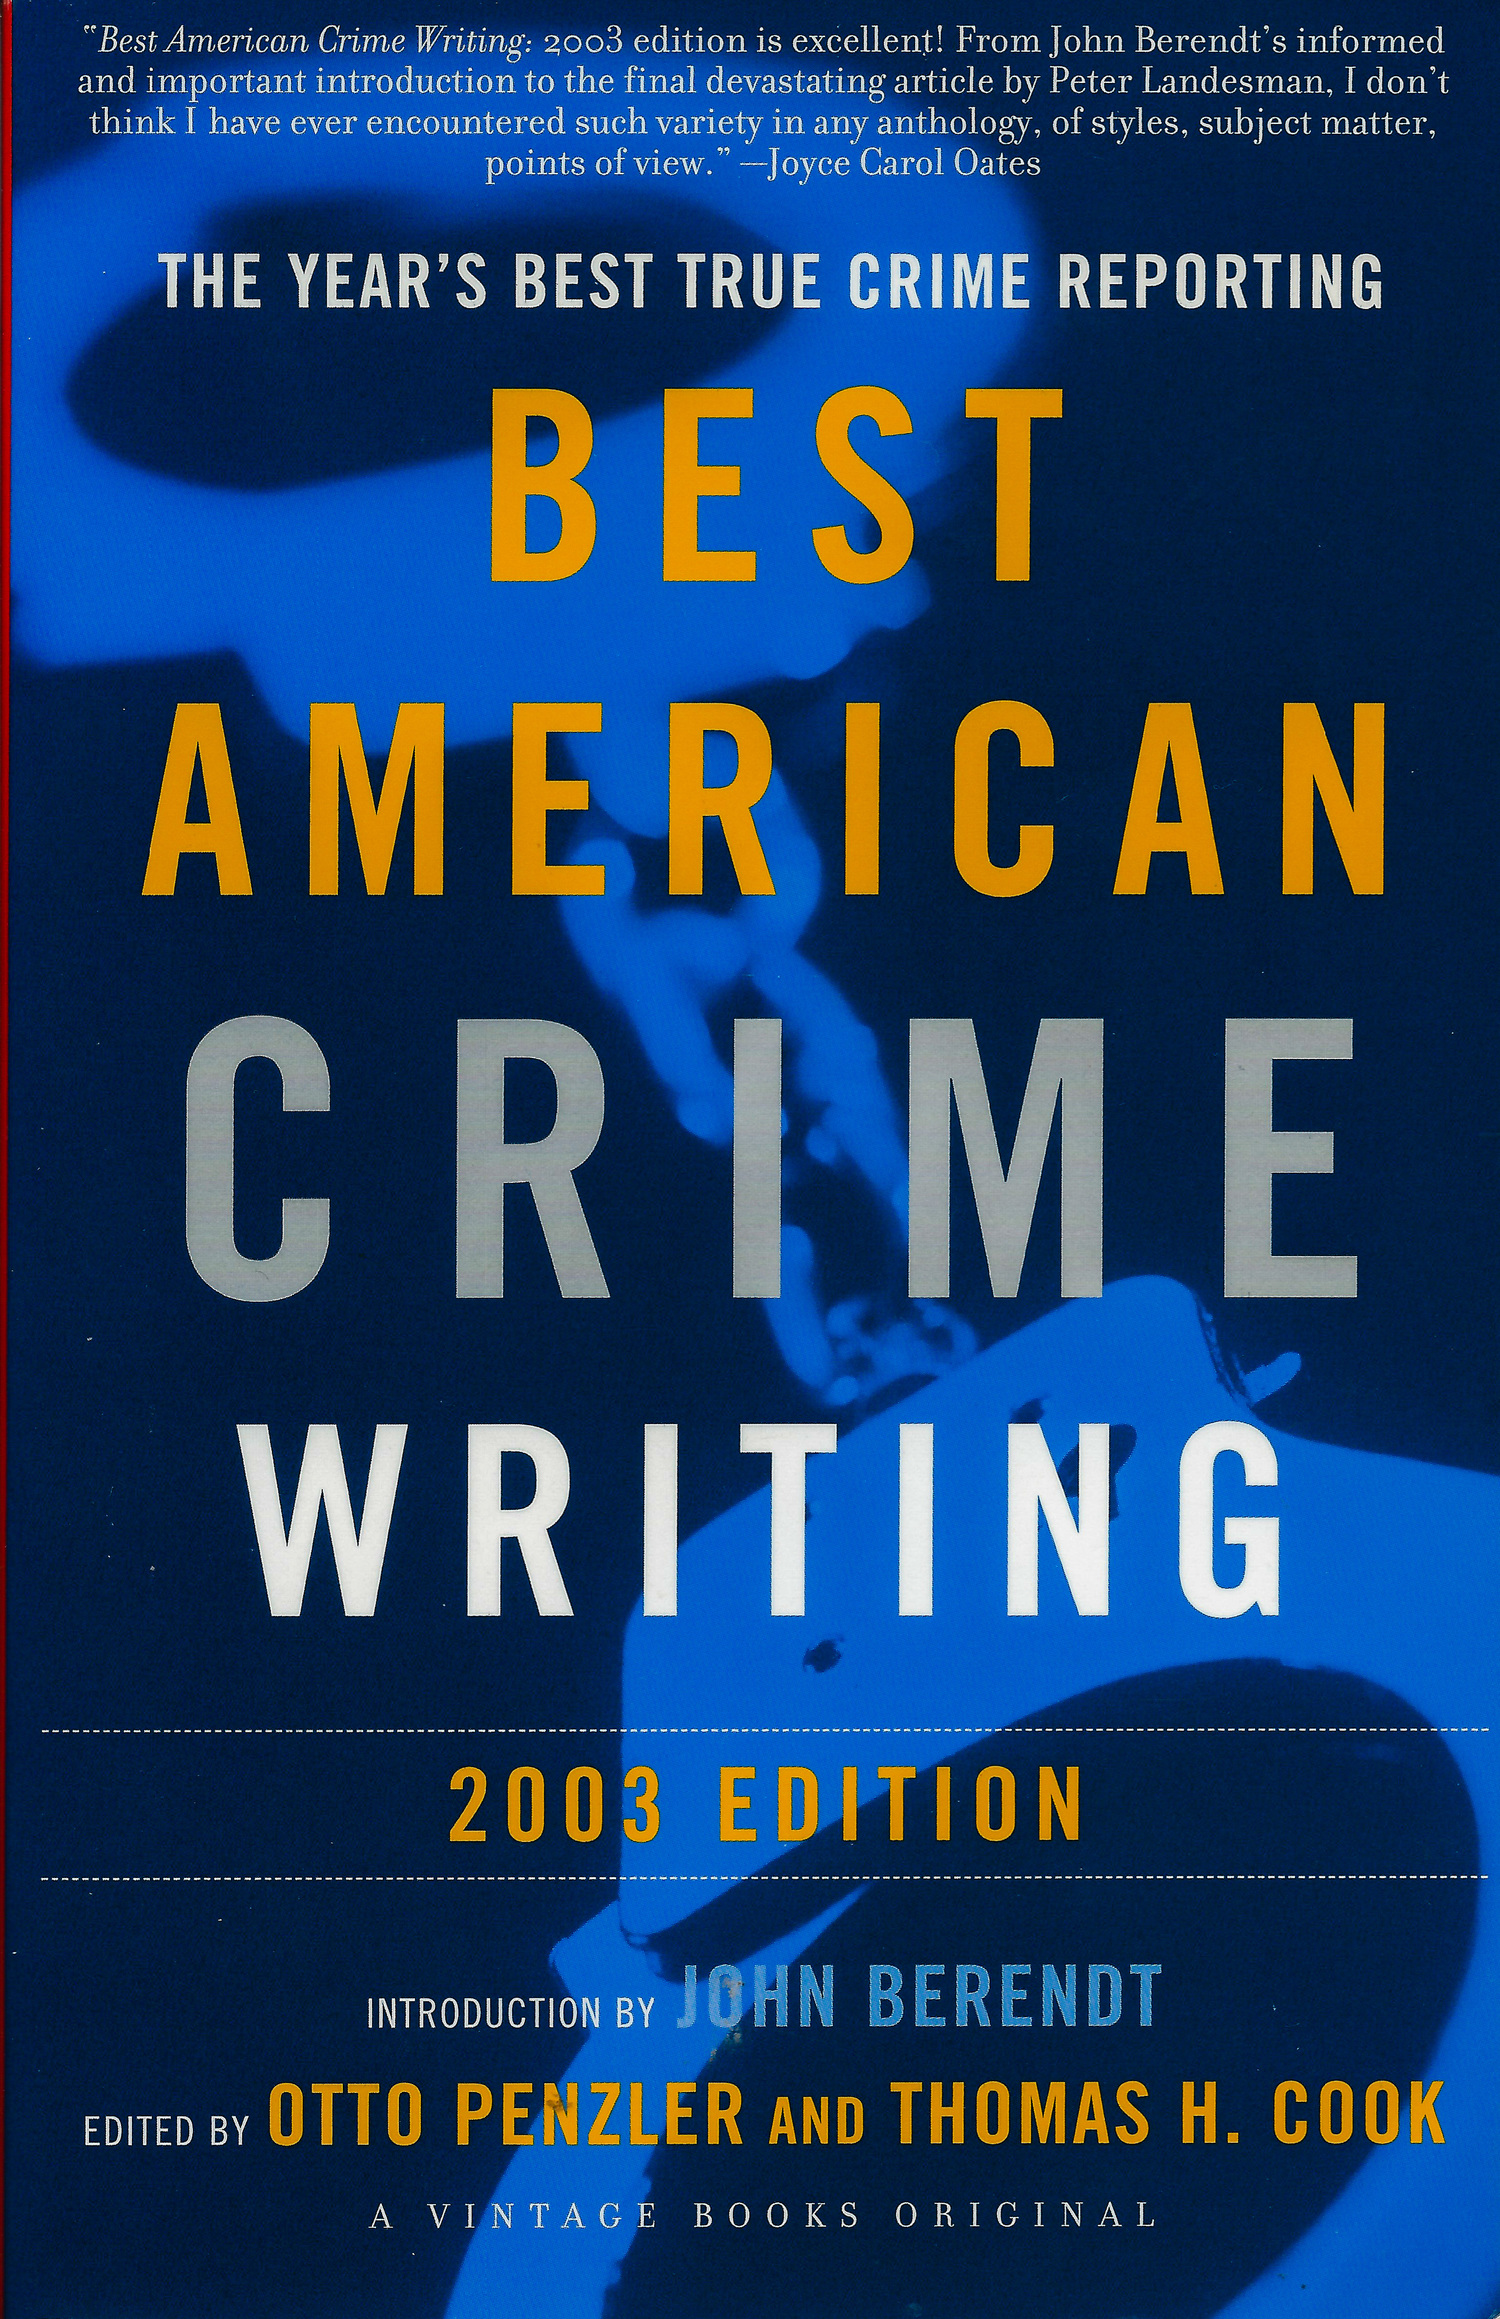 american in the 90s essay Category: essays research papers title: the differences of the 50s and the 90s my account the differences of the 50s and the 90s length: 572 words (16 double-spaced better essays: america in the 50s and 70s essay examples - the american society in the 1950's saw tremendous increases.